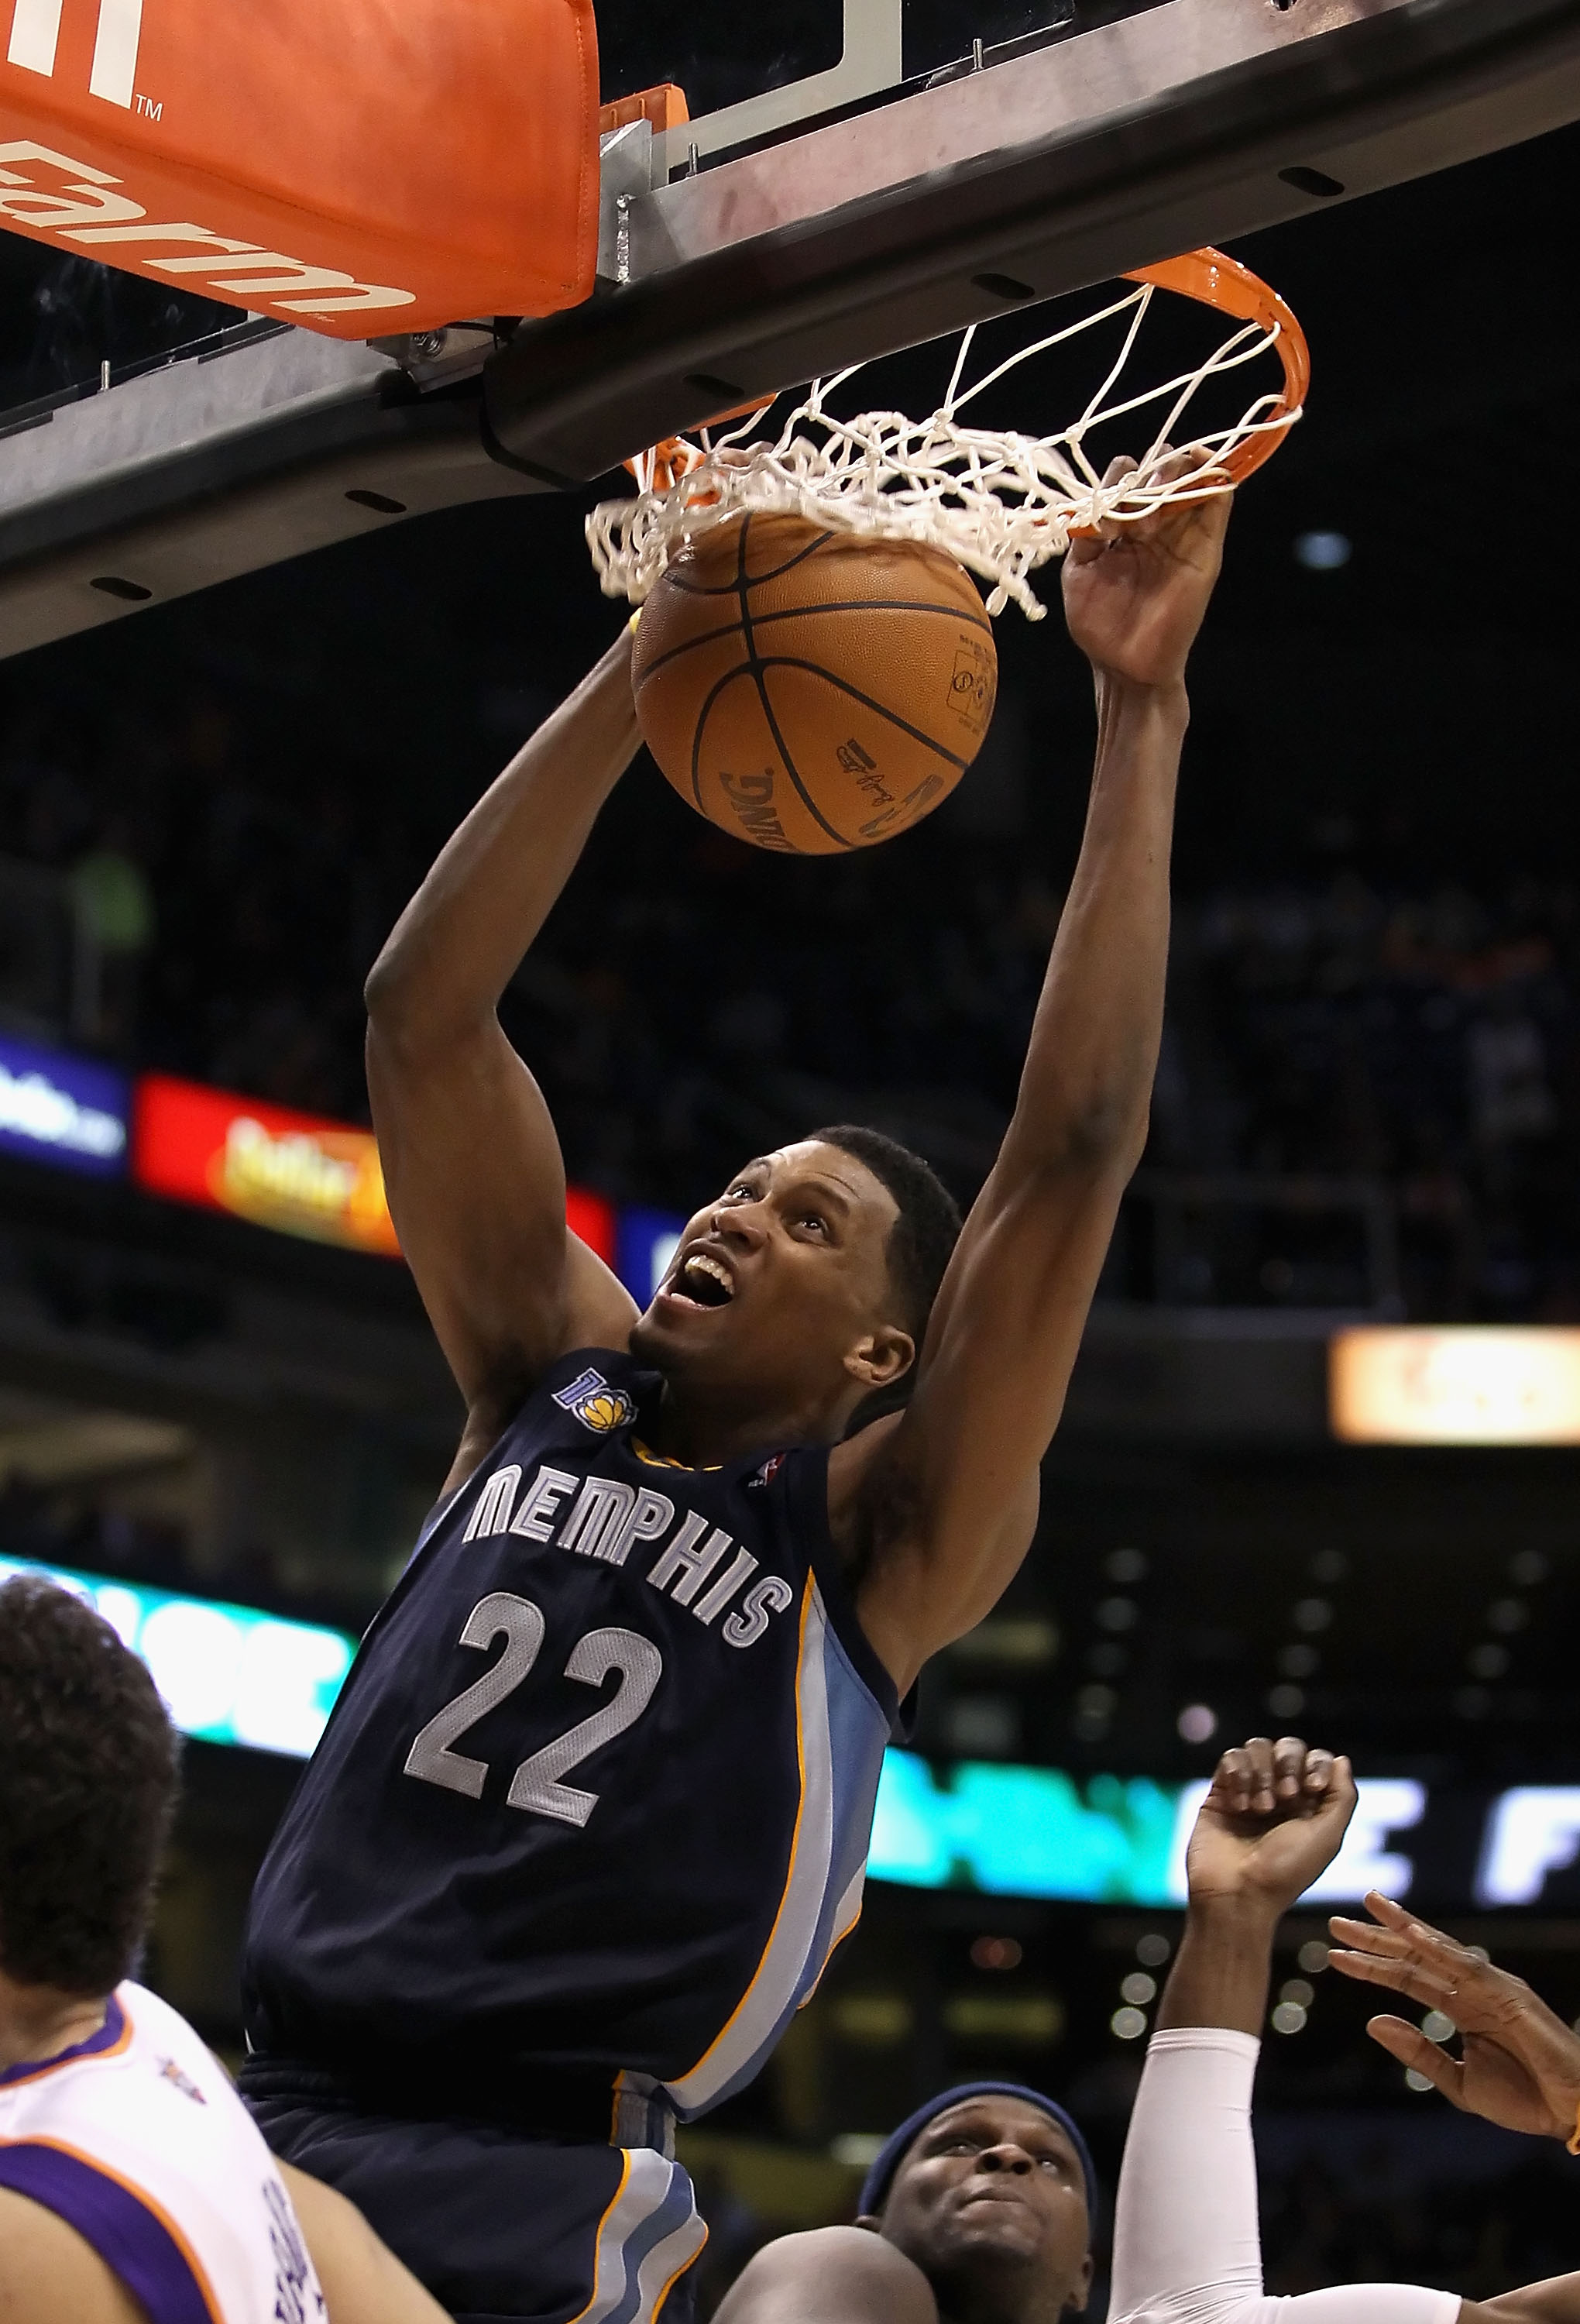 PHOENIX - DECEMBER 08:  Rudy Gay #22 of the Memphis Grizzlies slam dunks the ball against the Phoenix Suns during the NBA game at US Airways Center on December 8, 2010 in Phoenix, Arizona. The Grizzlies defeated the Suns 104-98 in overtime.  NOTE TO USER: